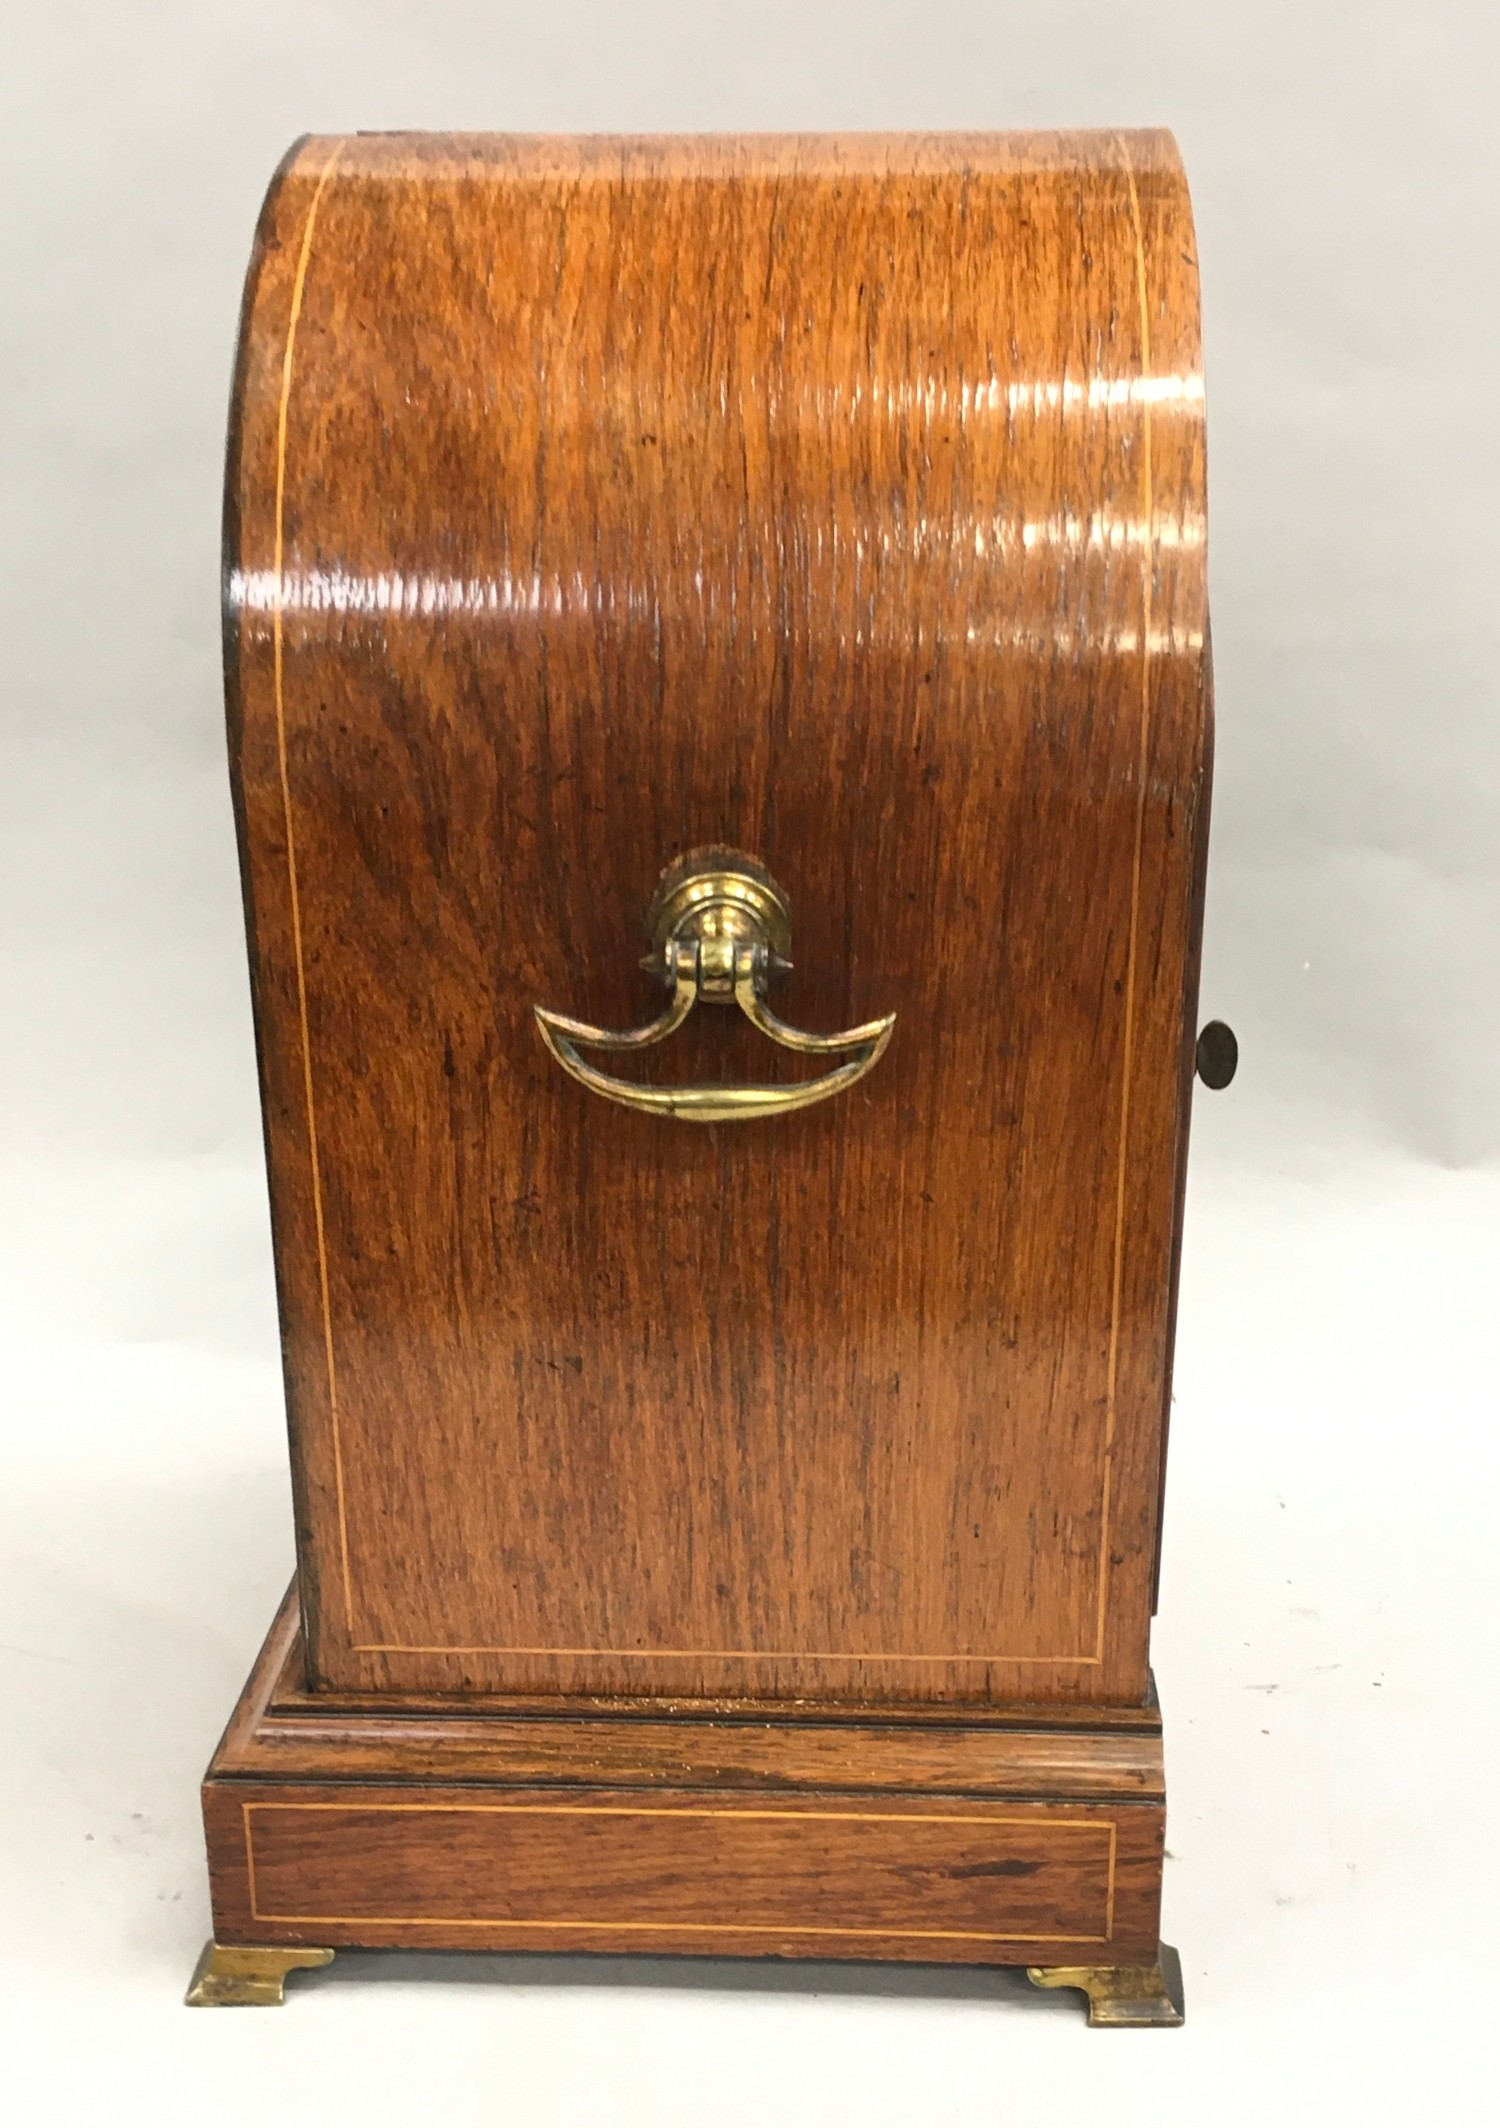 Edwardian in laid dome shape striking mantle clock,with brass face on brass feet and side carrying - Image 4 of 8